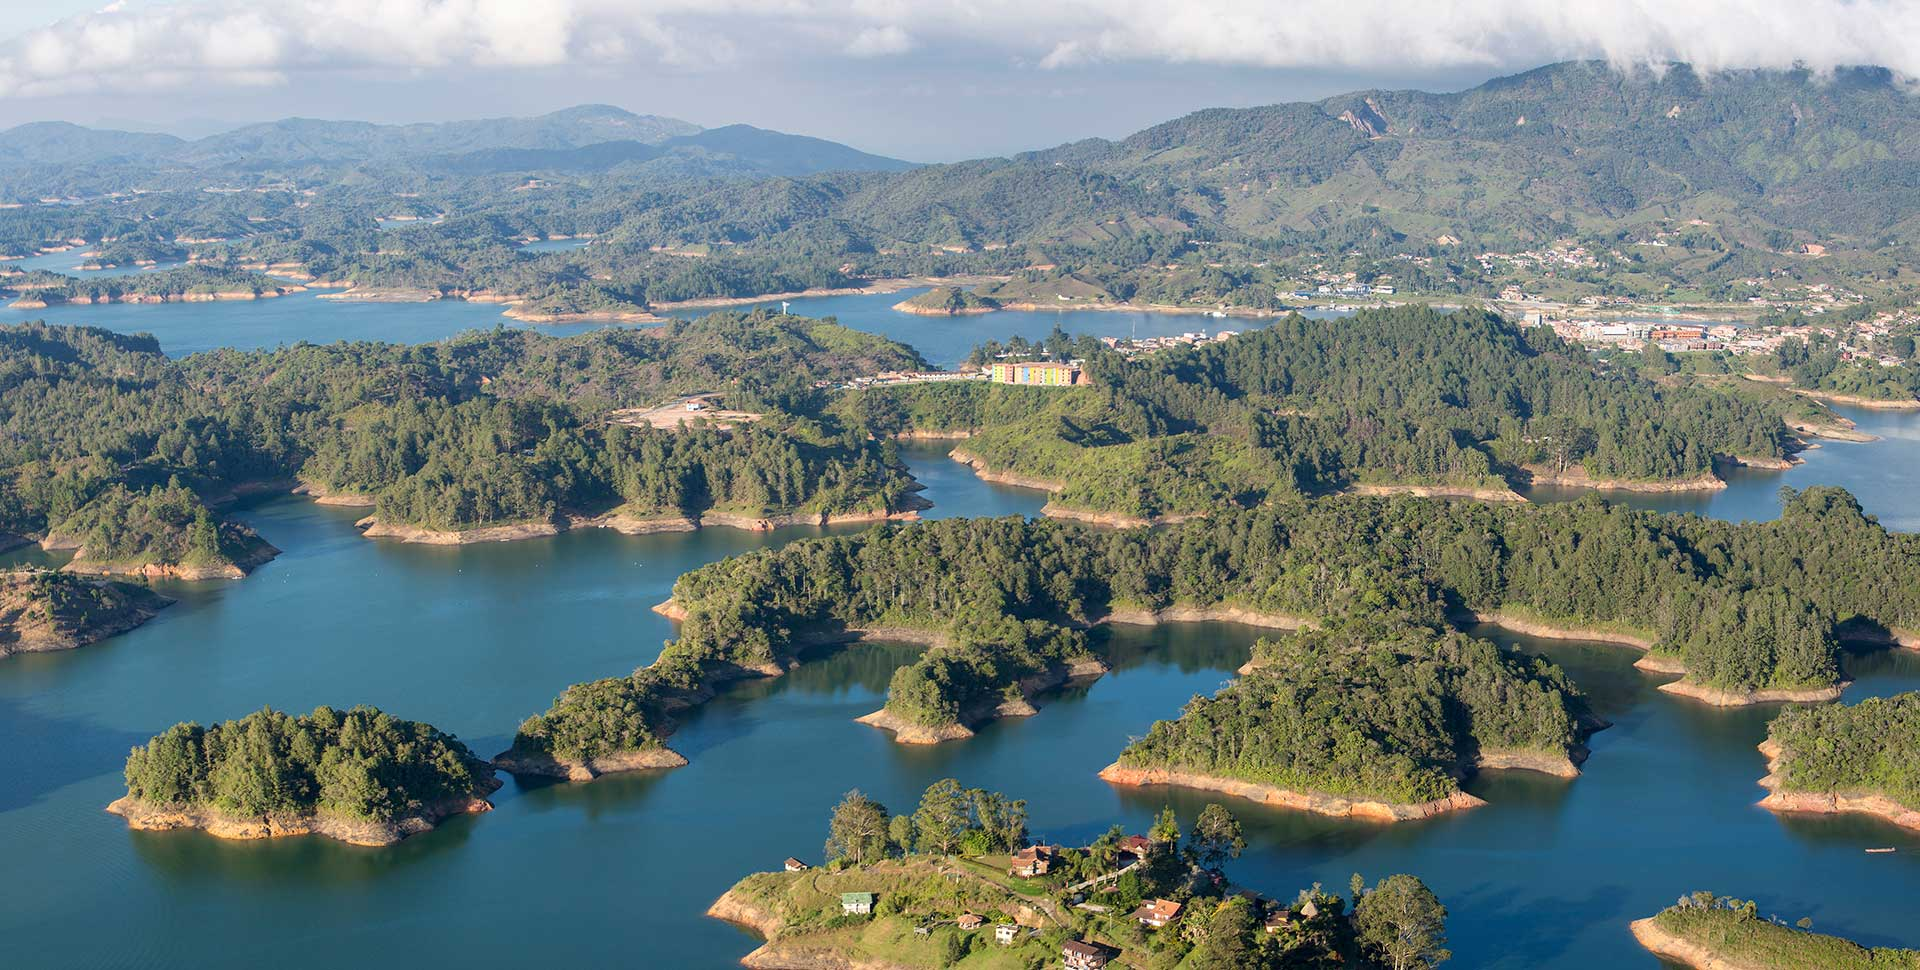 Islands and Lake in Guatape, Colombia